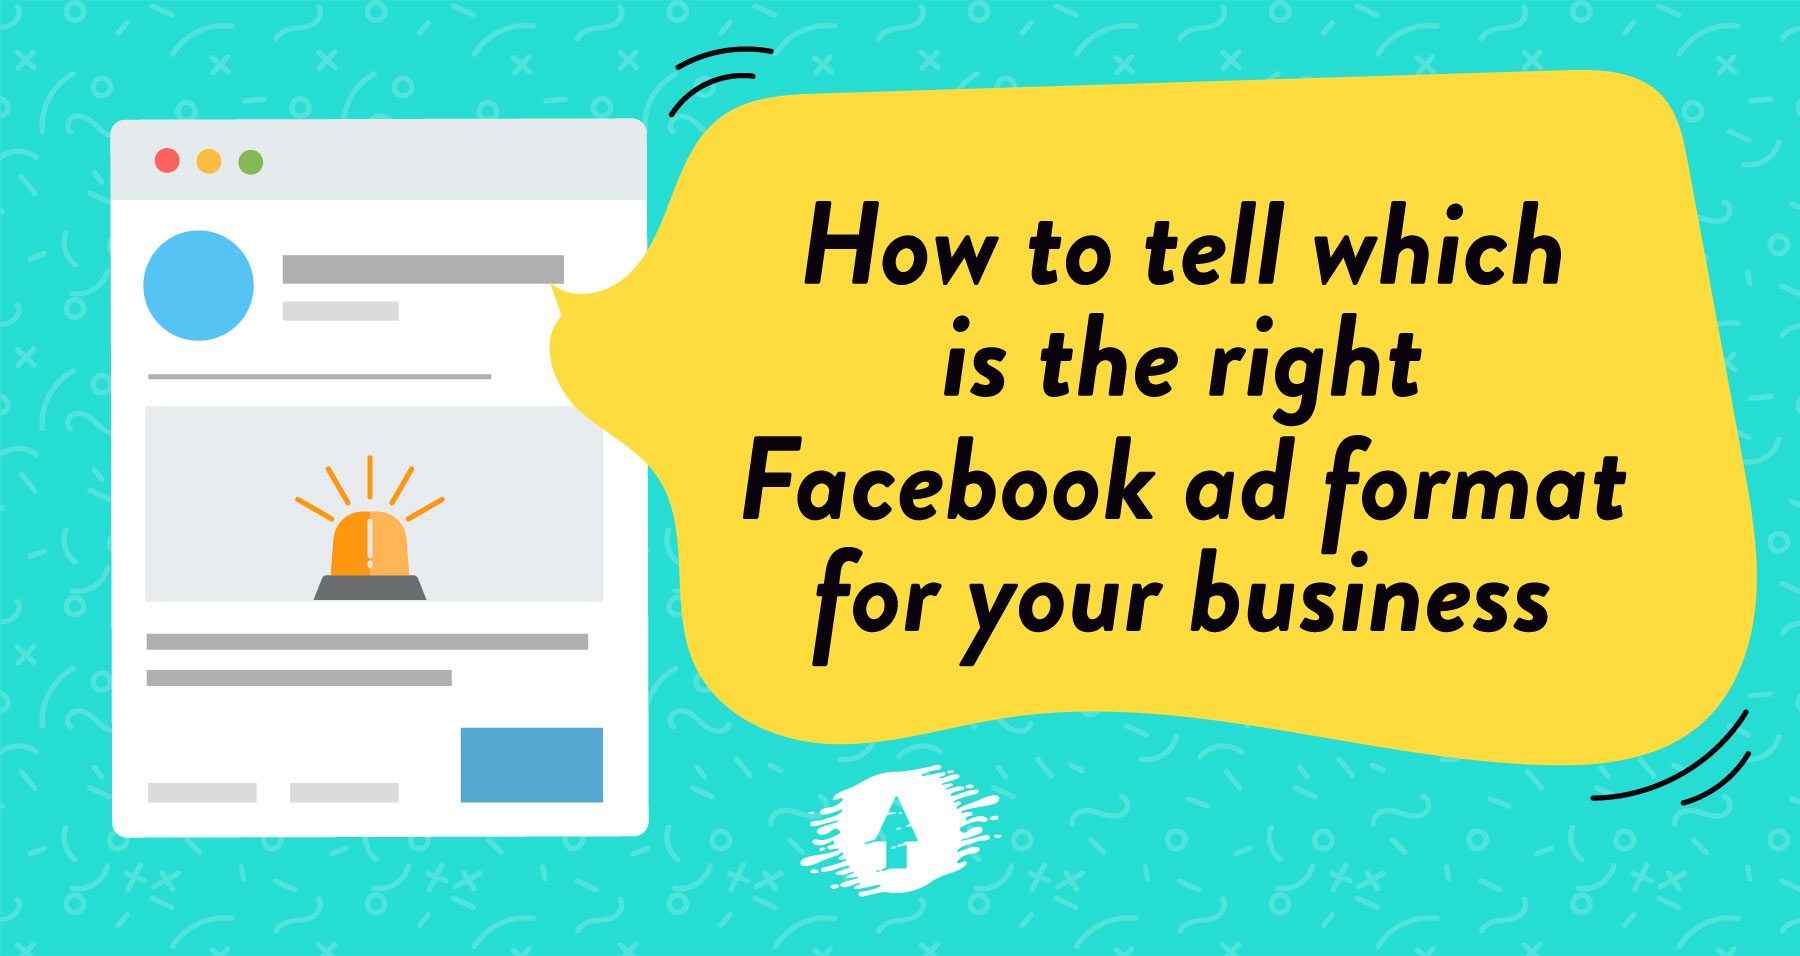 Facebook Ad format for your business